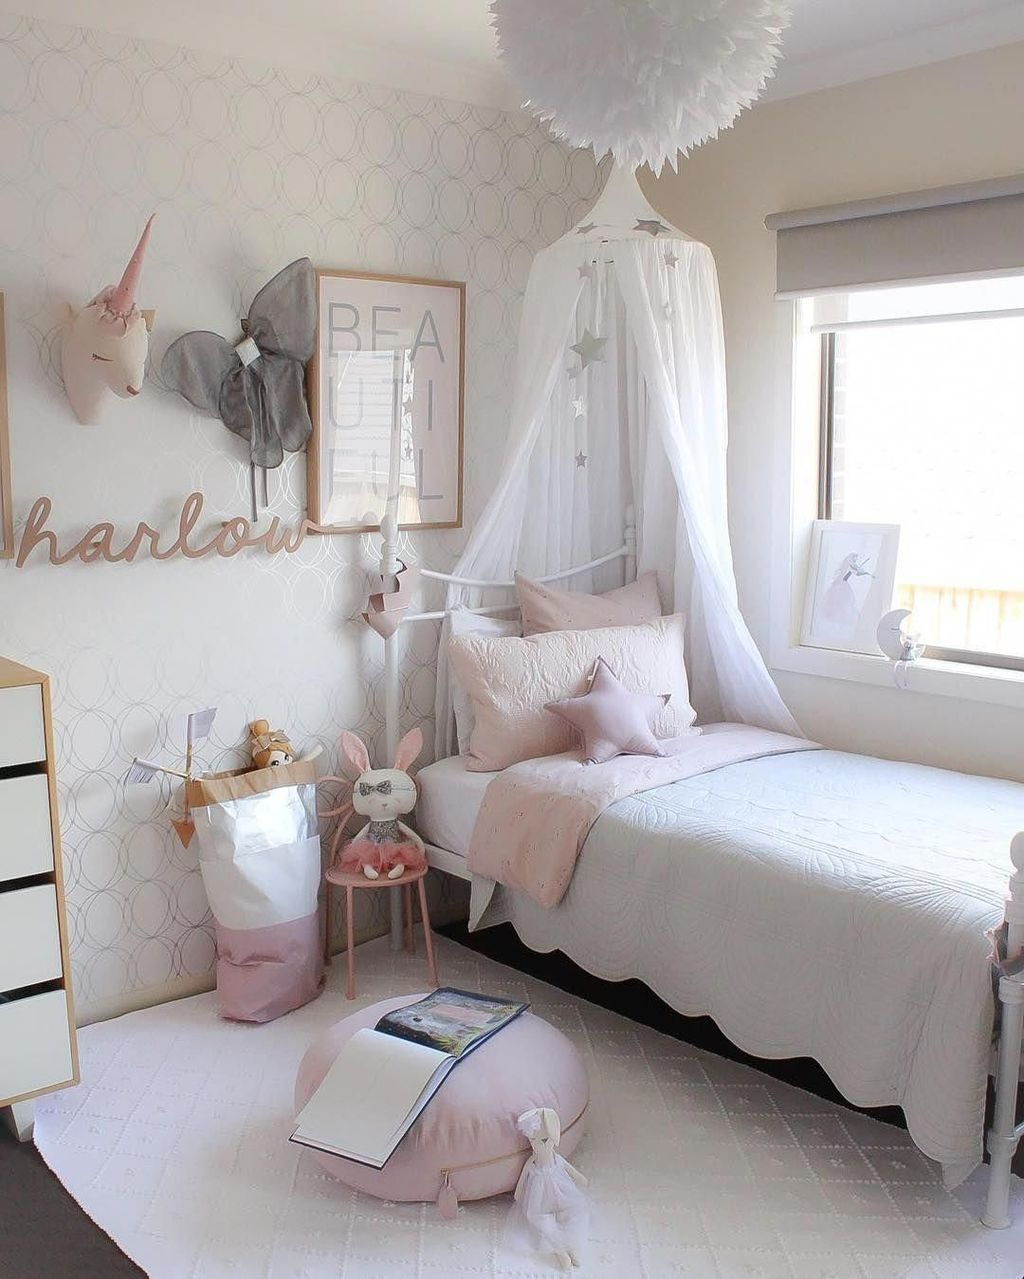 40 Cute Bedroom Ideas For Small Rooms Cute Bedroom Ideas Small Room Bedroom Girl Room